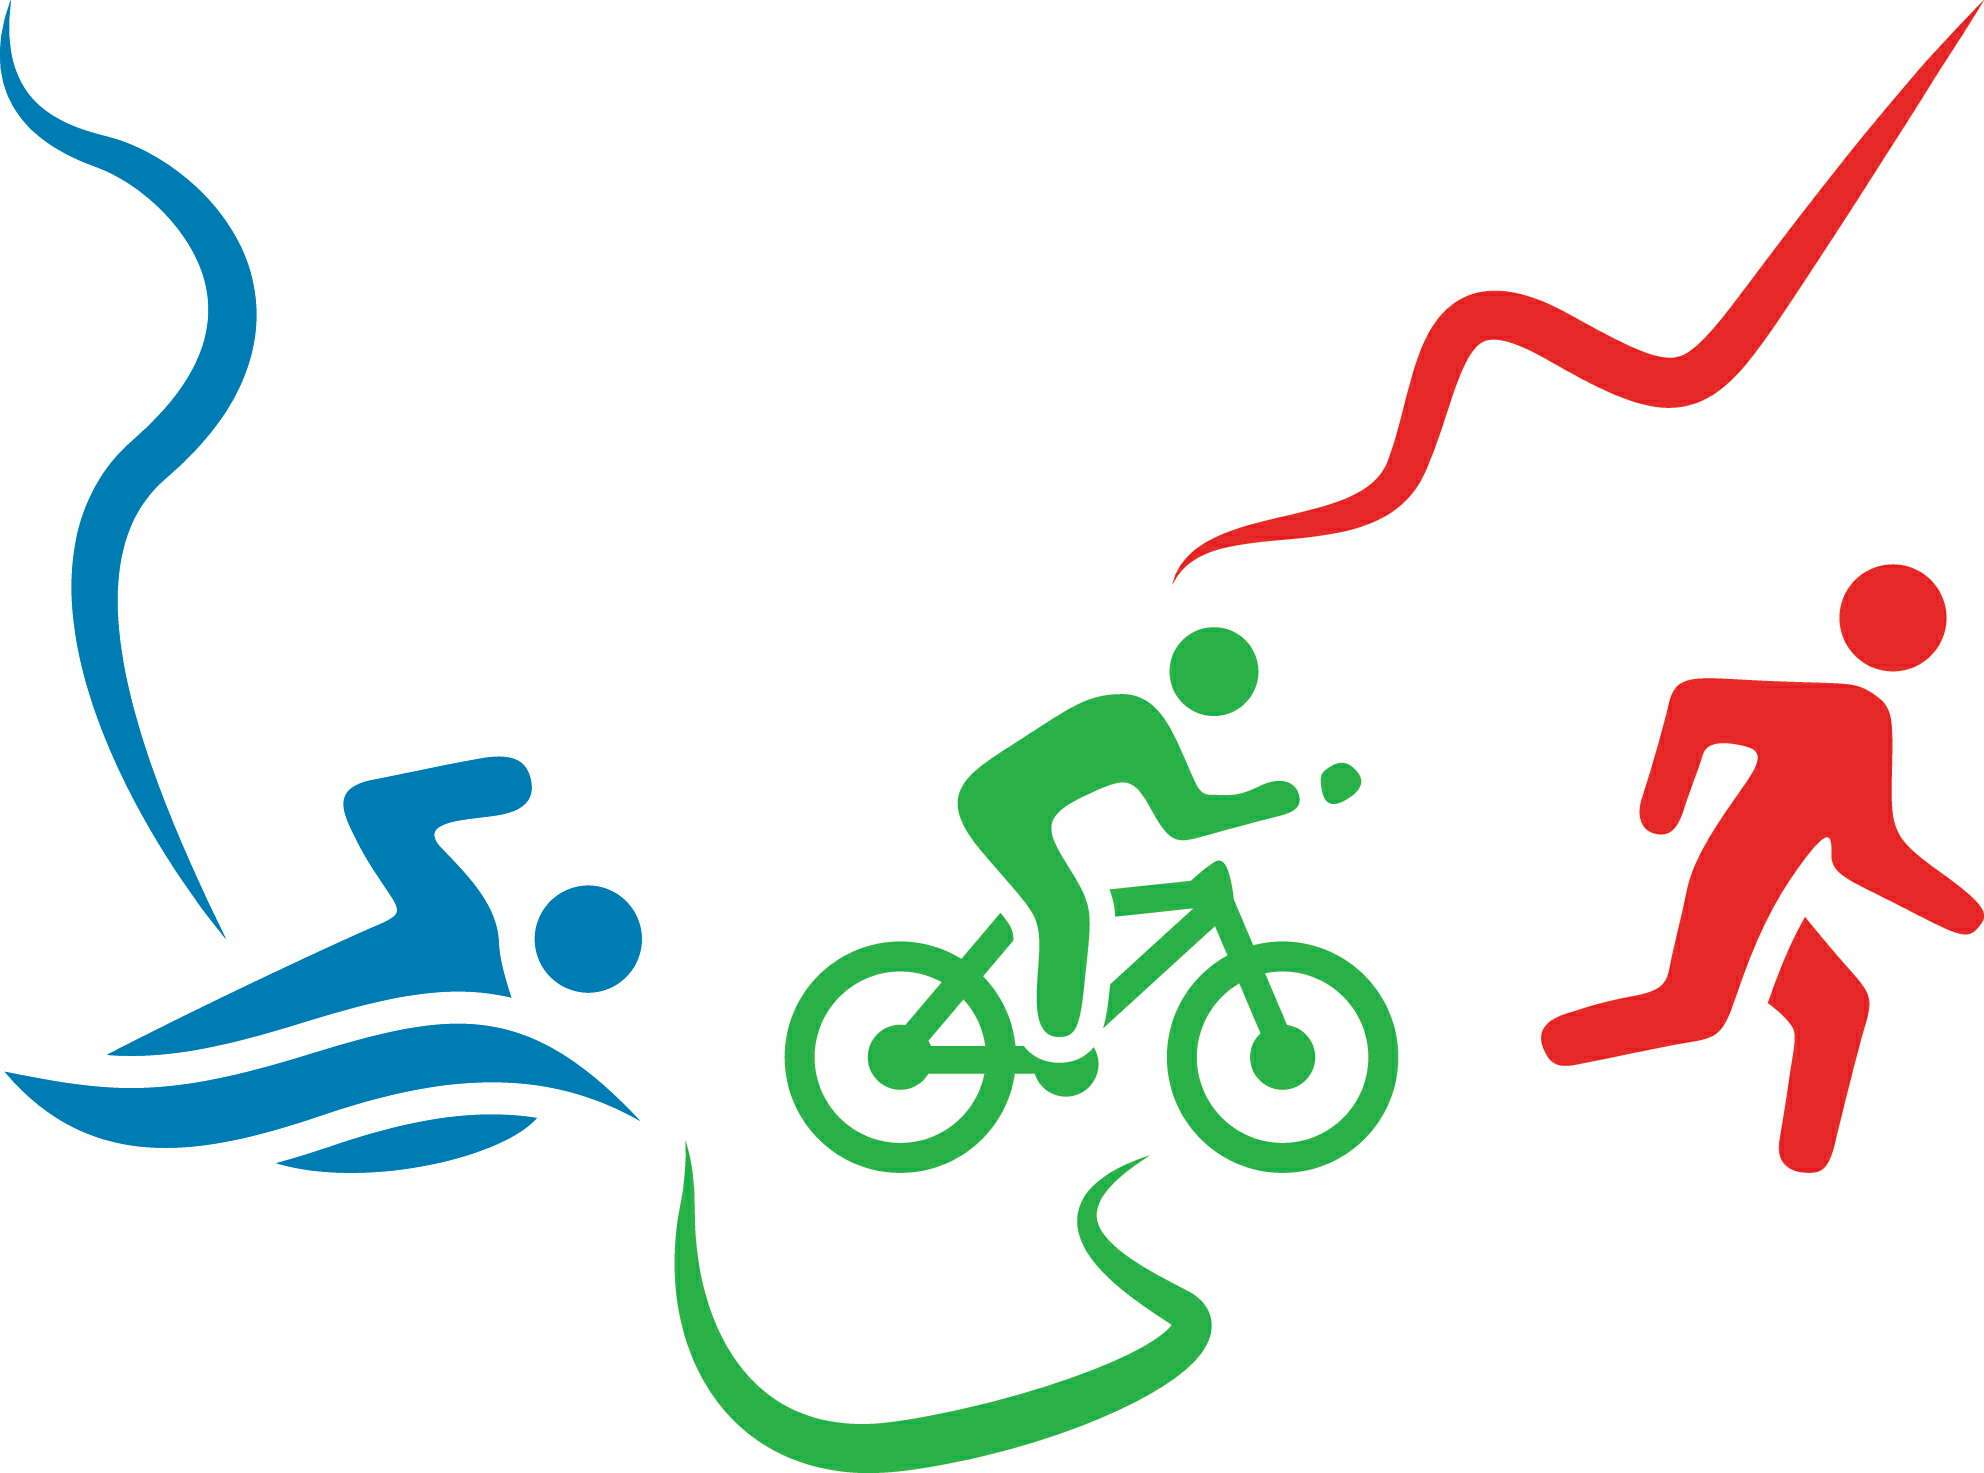 Swim Ride Run - Our logo elements